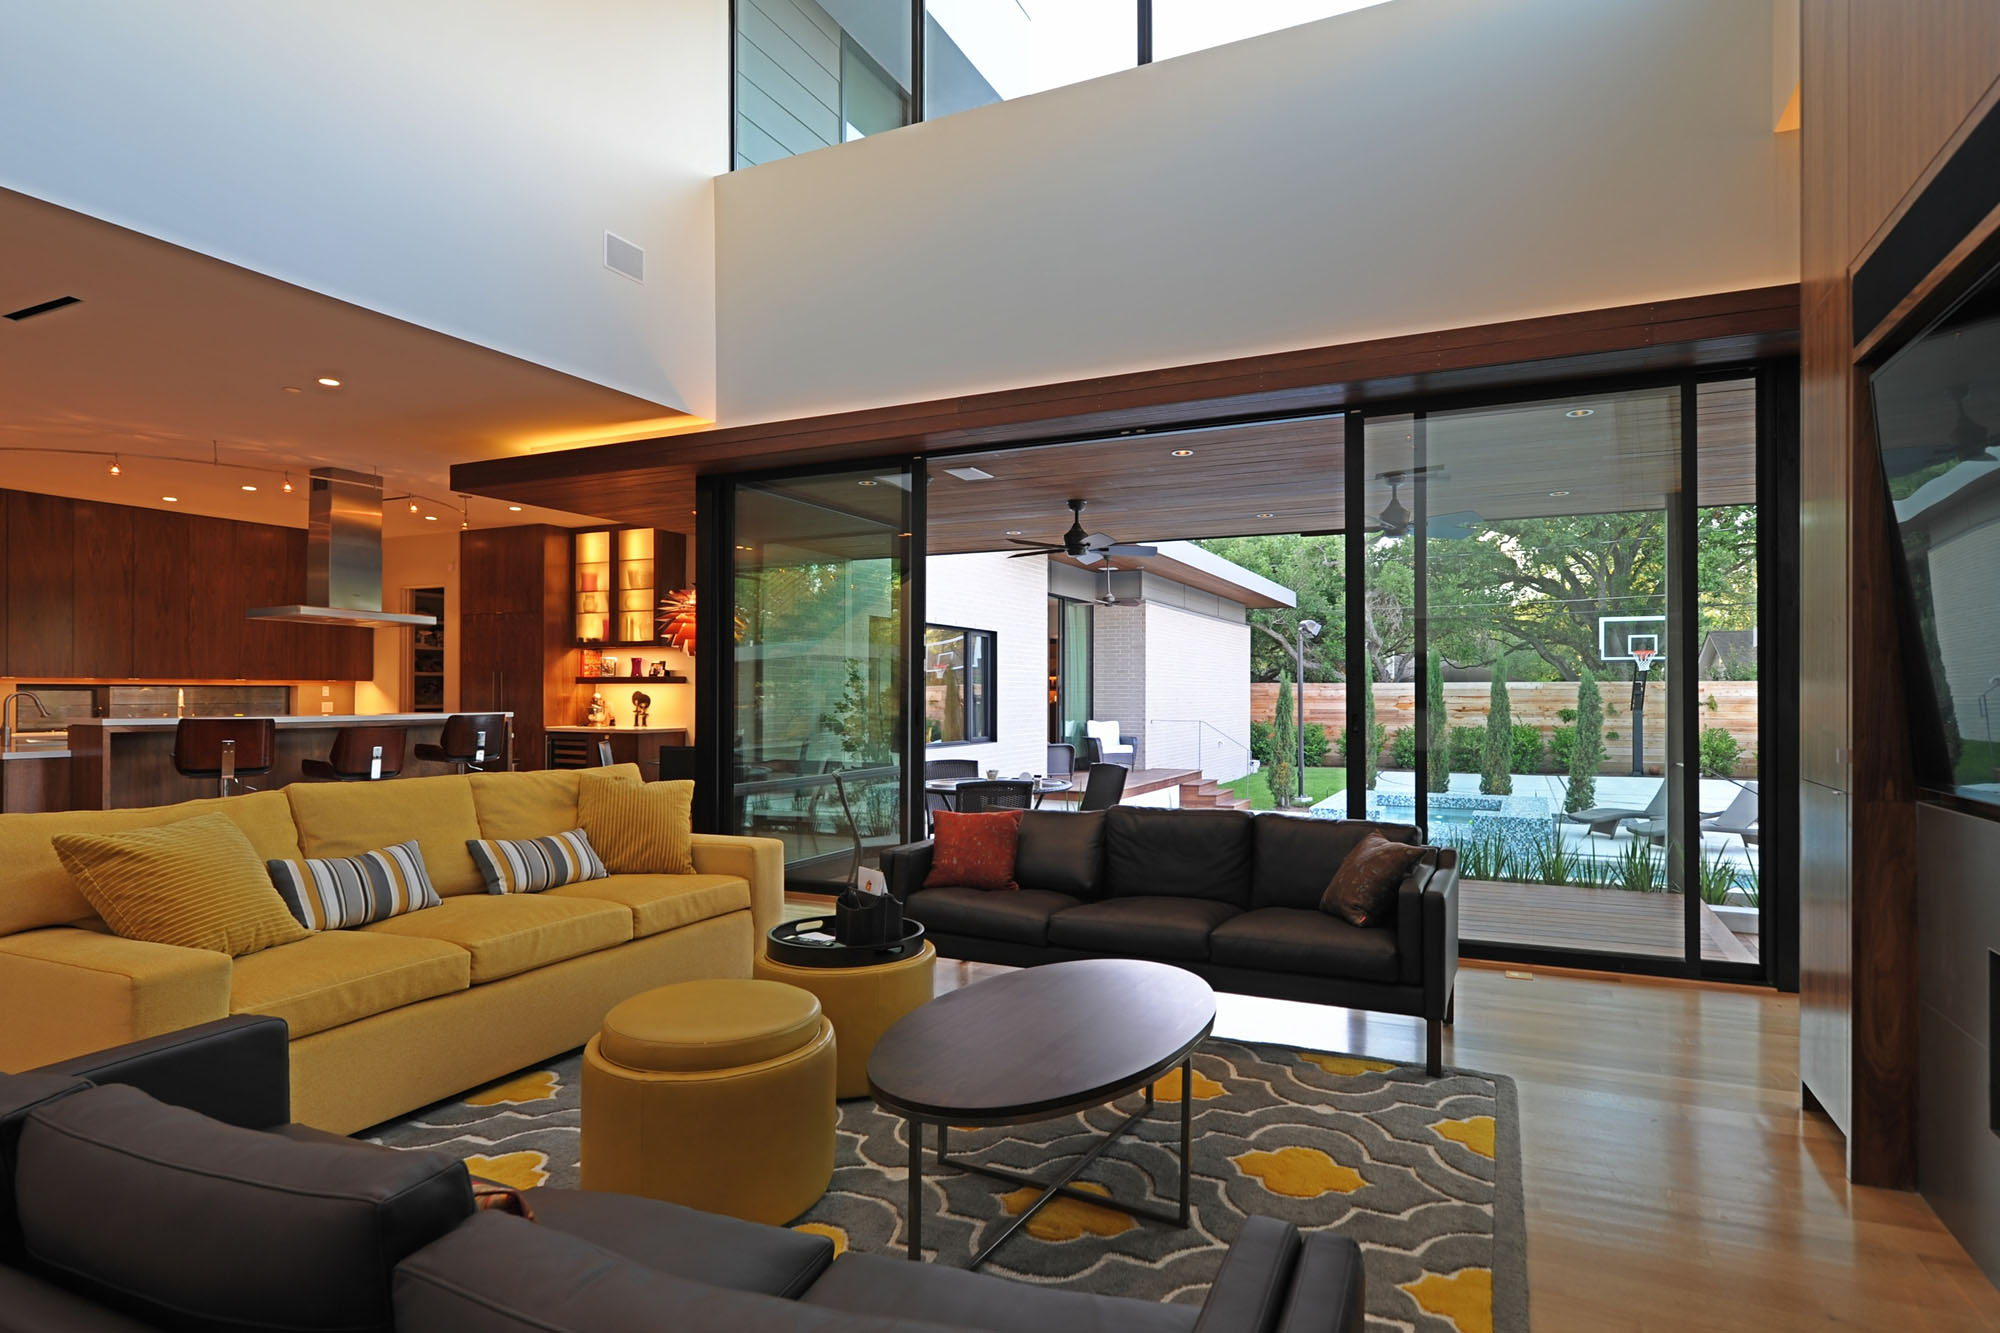 modern house in houston from architectural firm studiomet